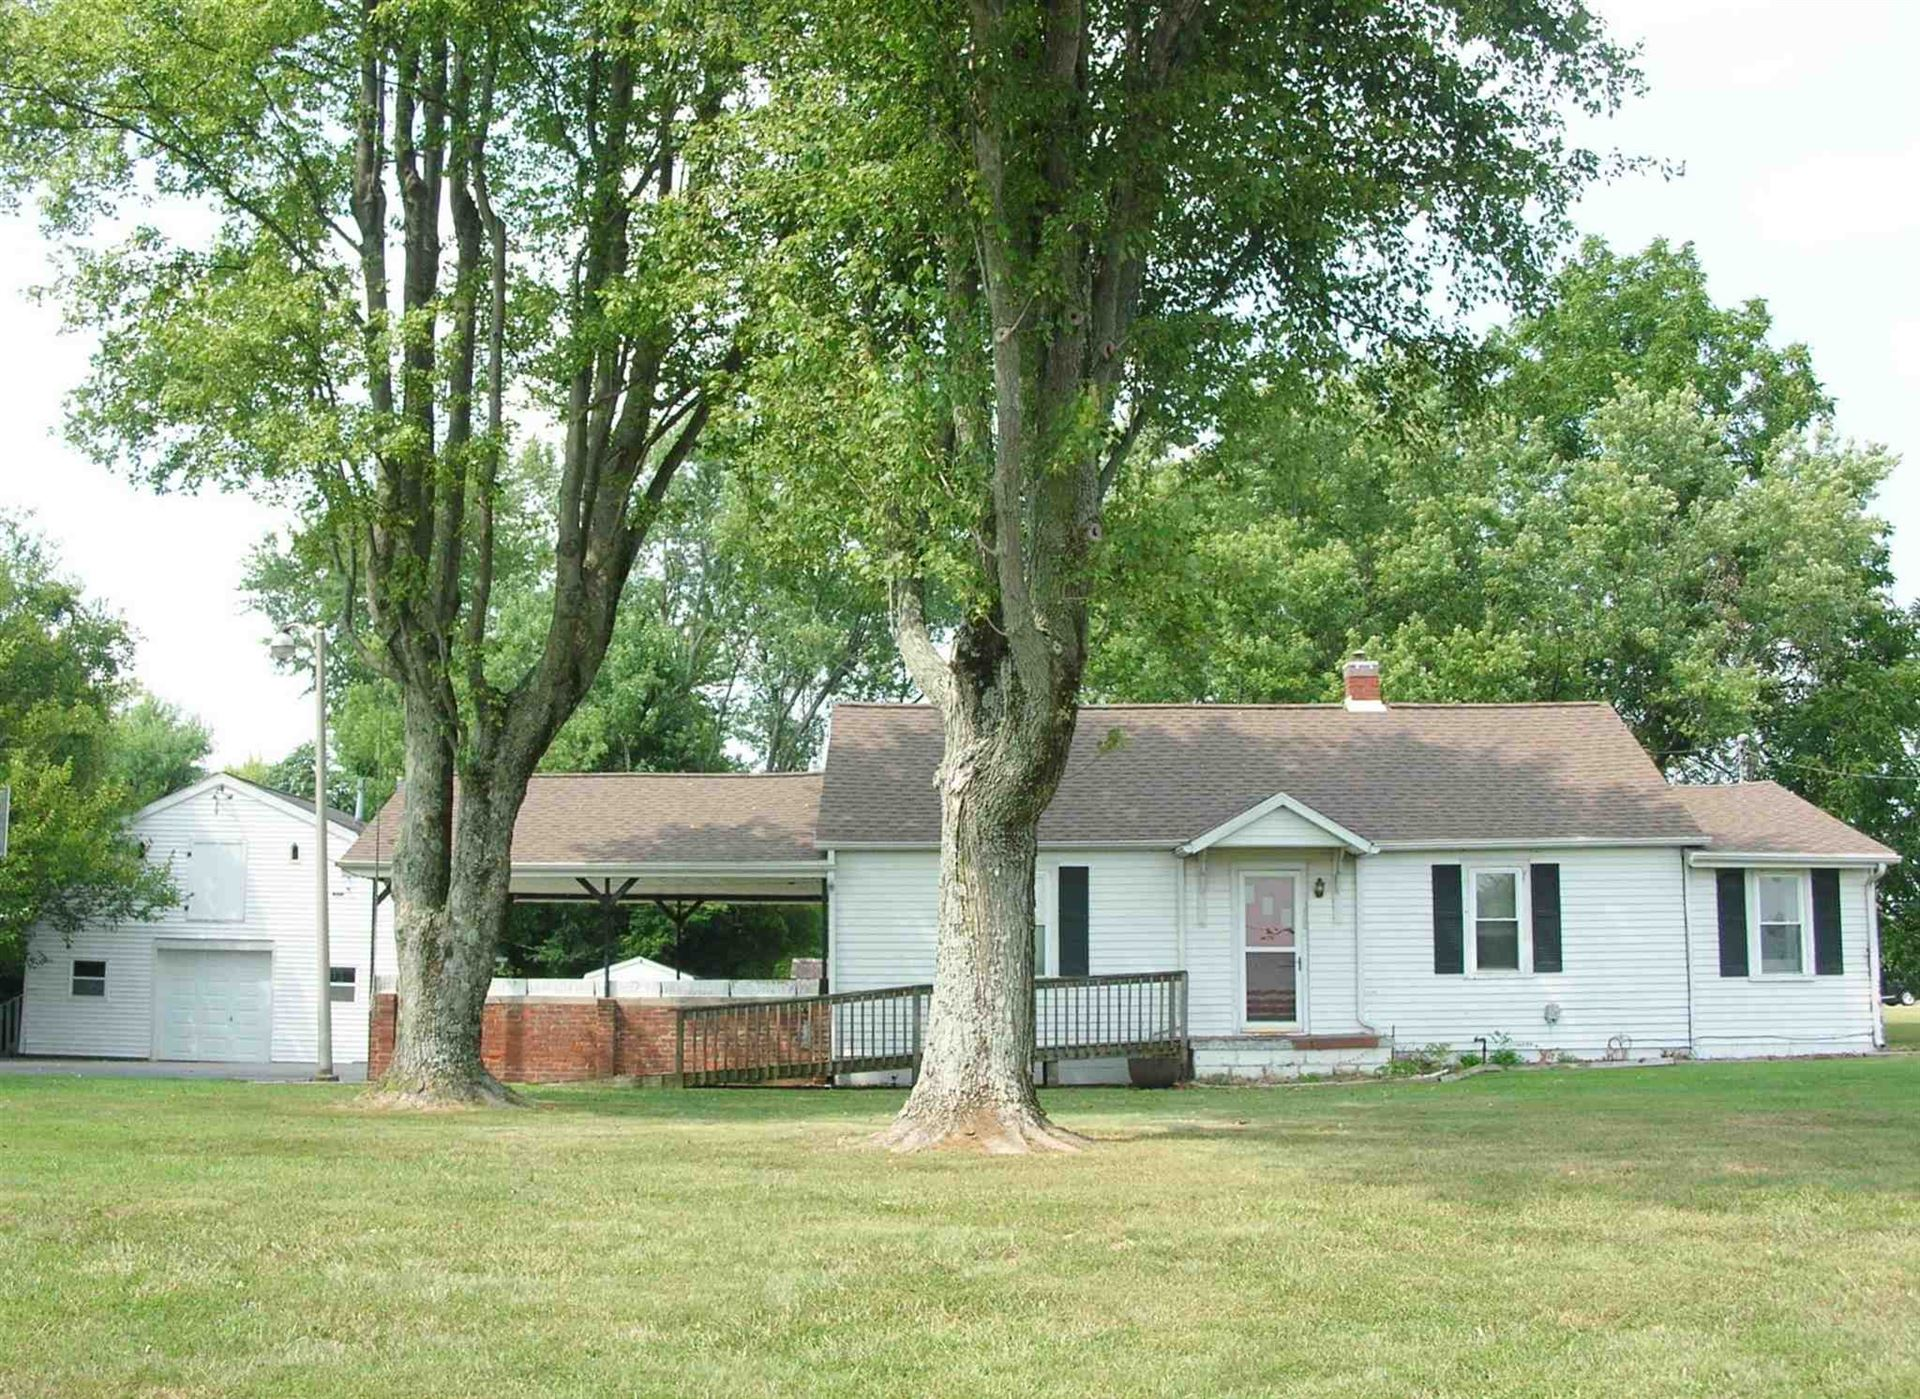 766 E St Rd 62 Road, Boonville, IN 47601 - MLS#: 202132545